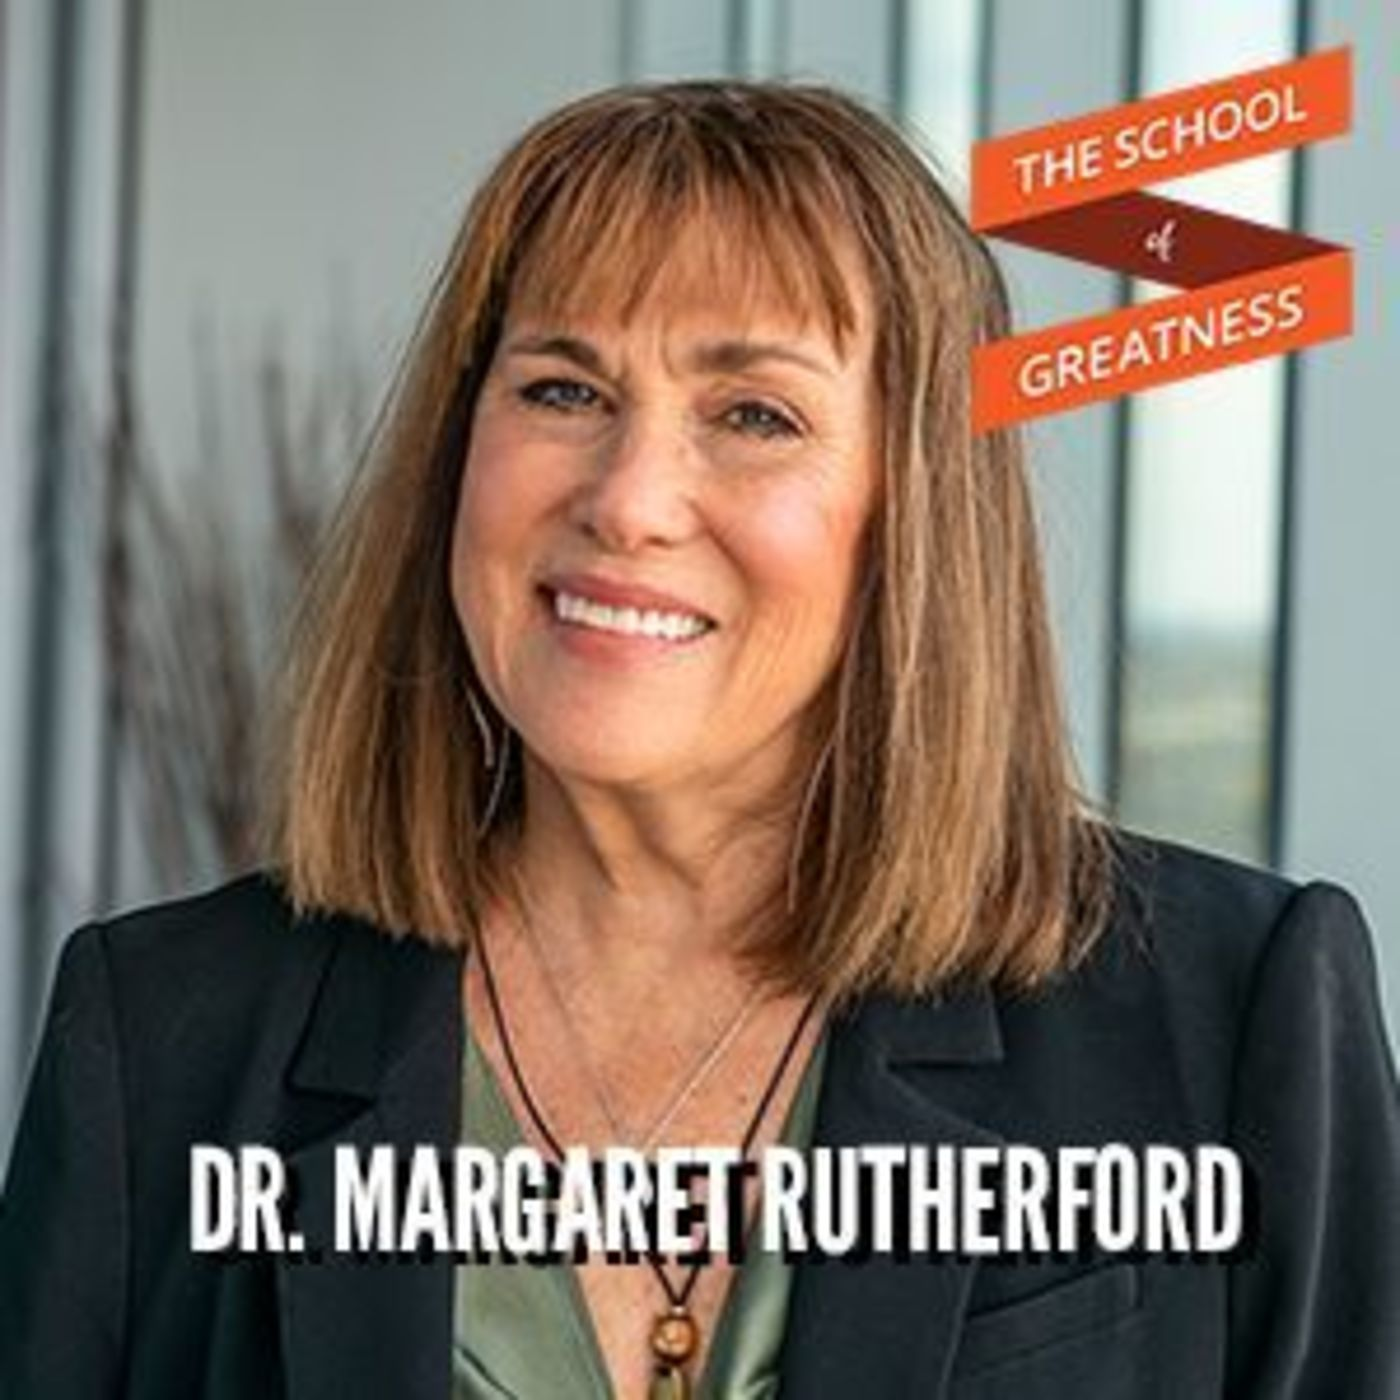 895 Upgrade Your Mental Health with Dr. Margaret Rutherford